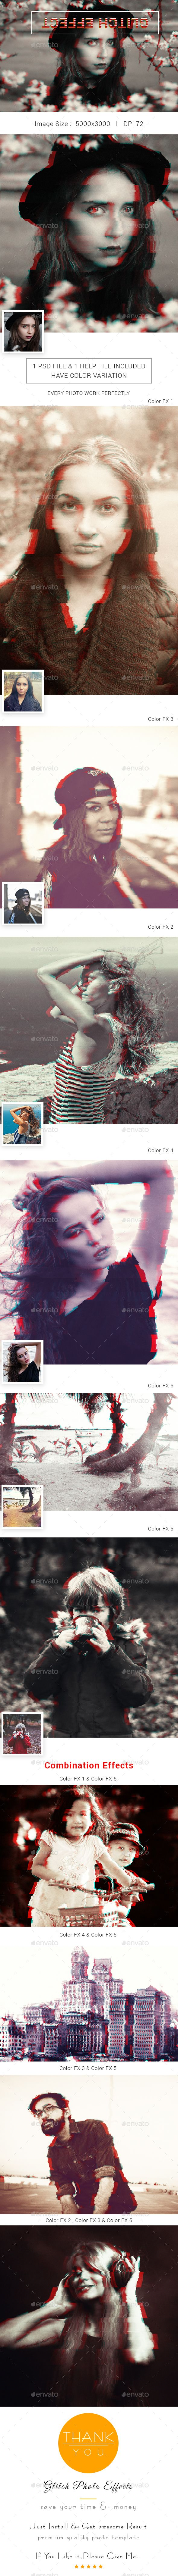 Glitch Photo Effects by FabioDesign_Lab Glitch Photo Effects Features: This template will convert your photo into glitched and VHS-looking artwork in few simple clicks